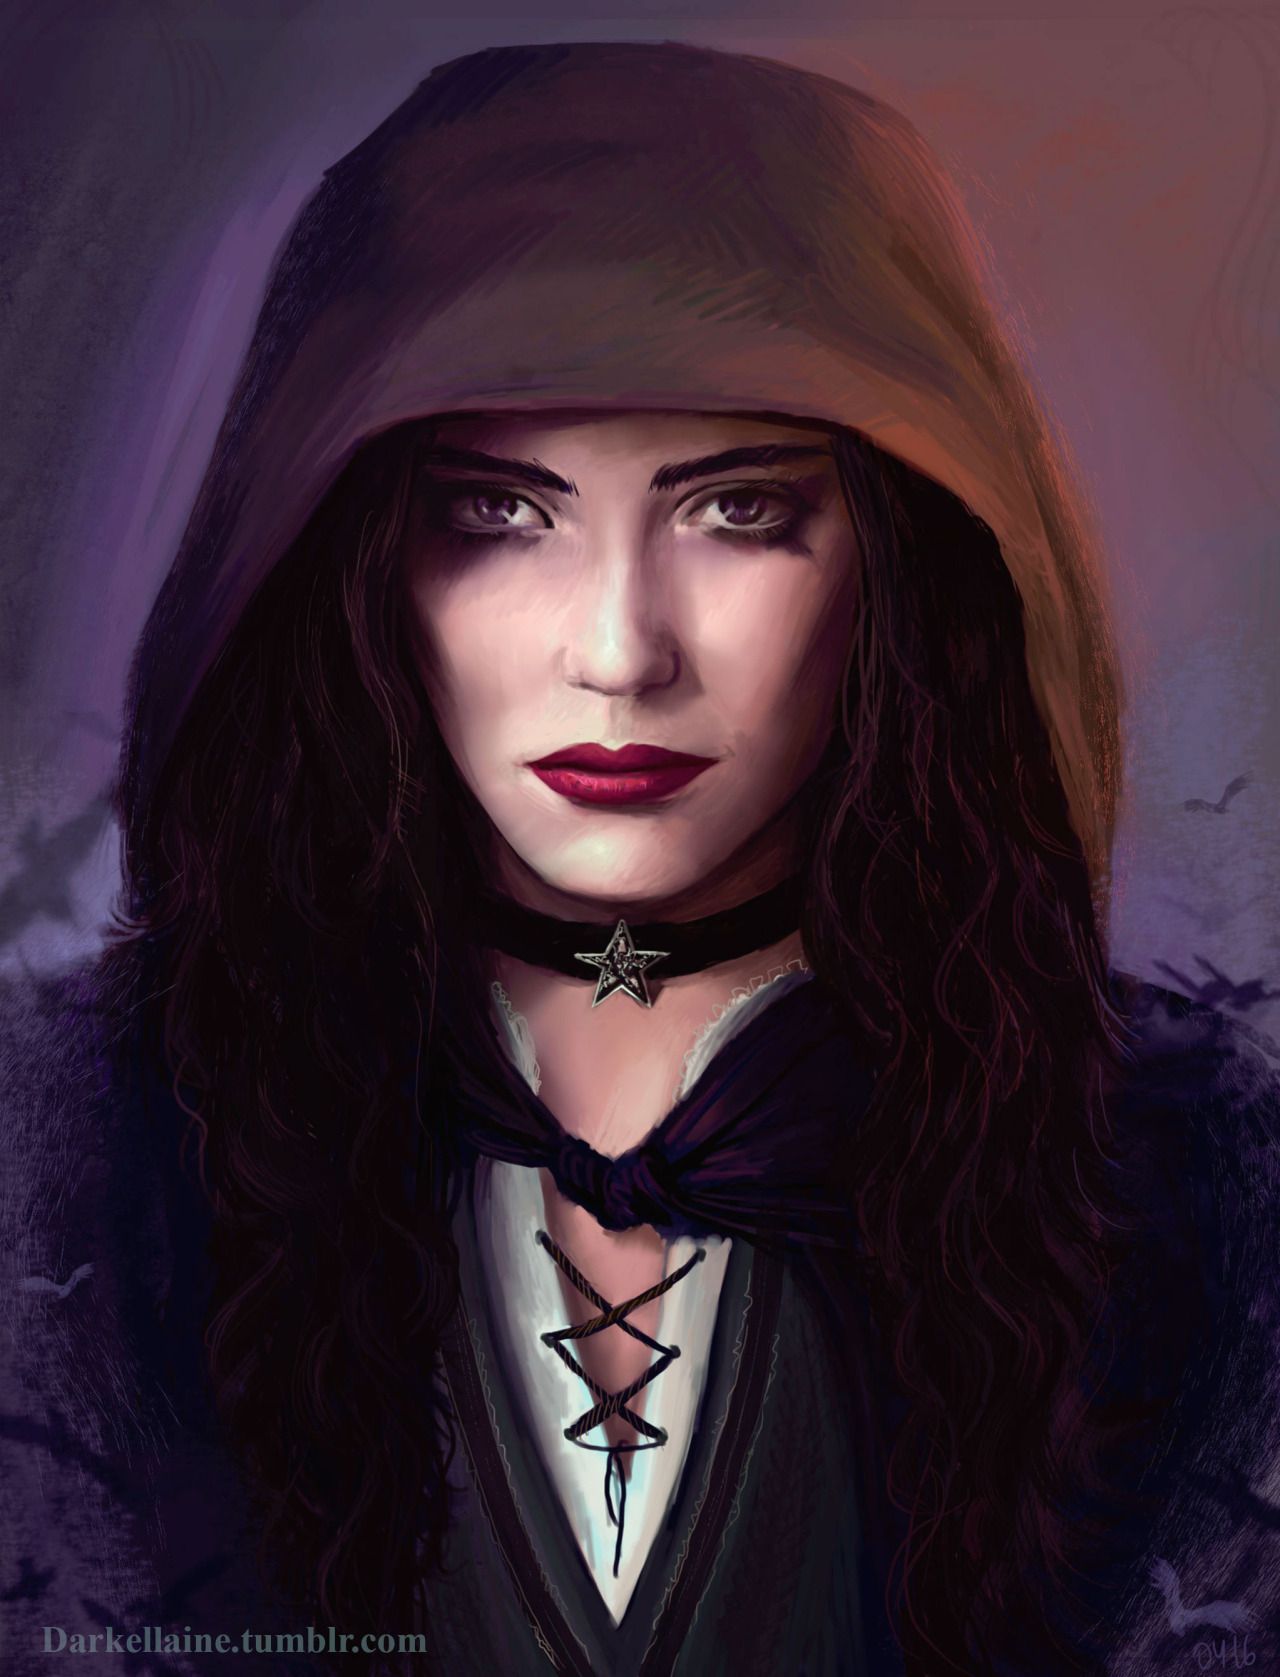 "darkellaine: ""Yennefer of Vengerberg. She was my role model in my early teens :) """